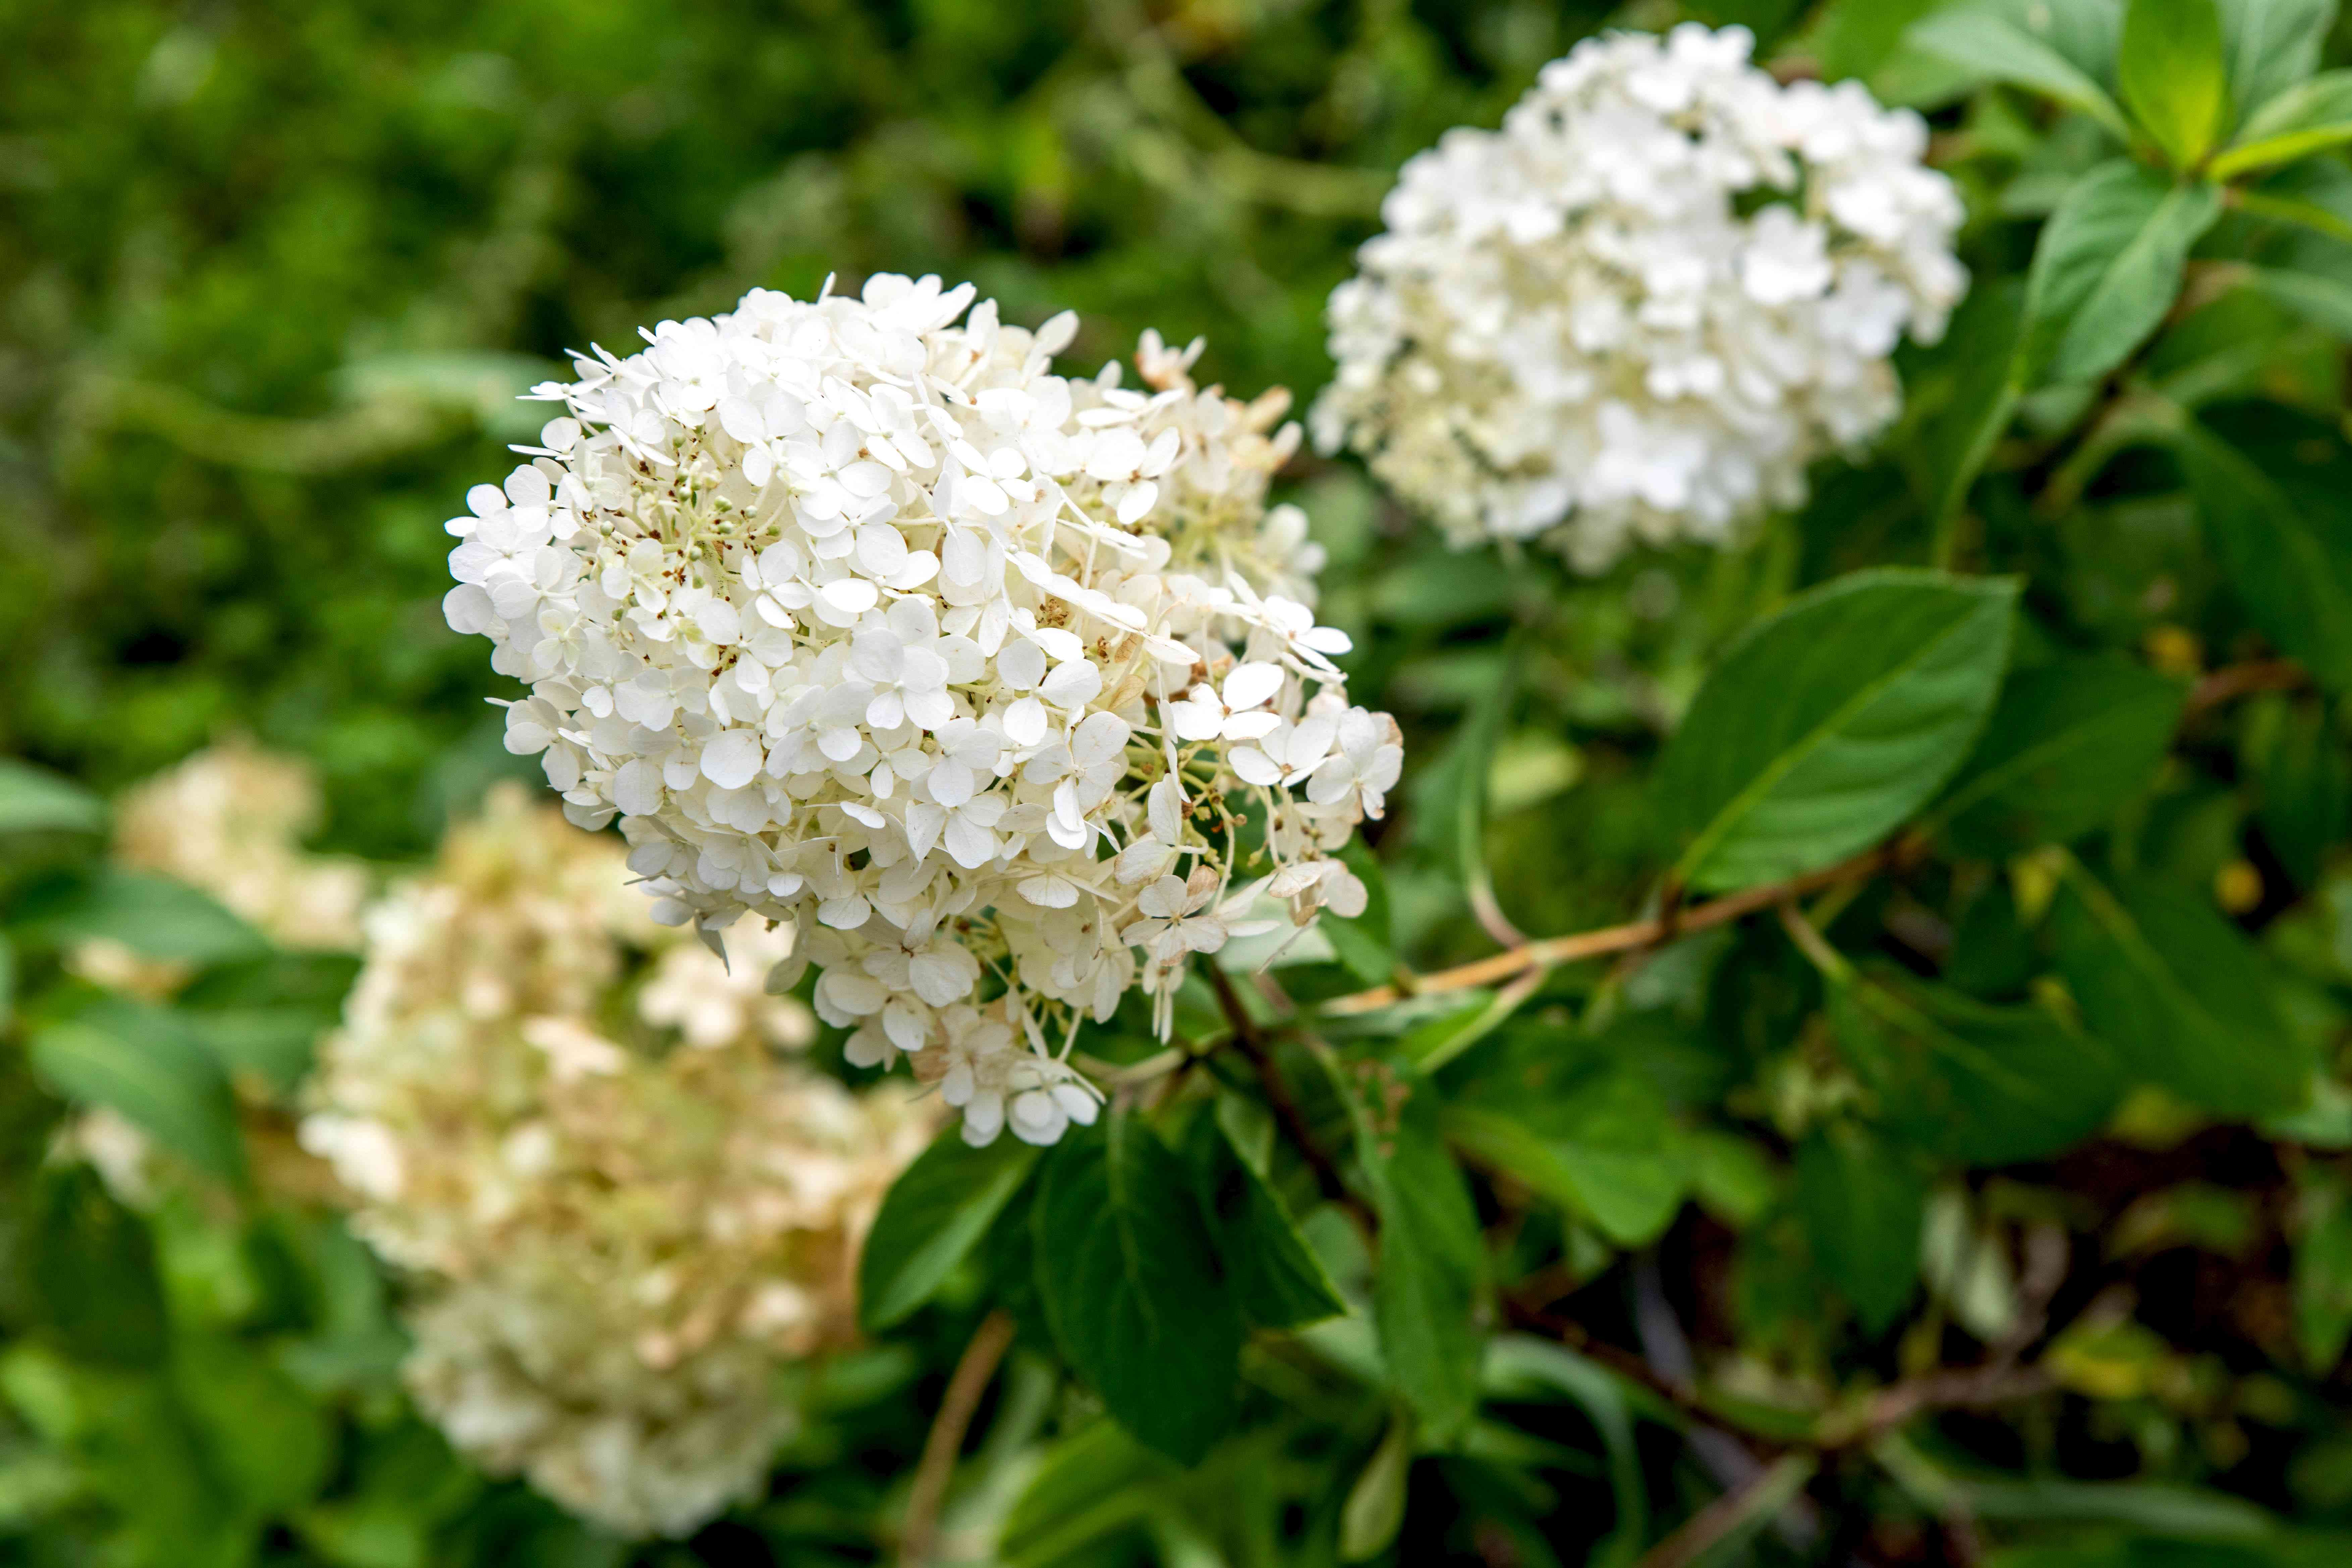 Bobo hydrangea shrub with white flower panicles on end fo branches with oval leaves